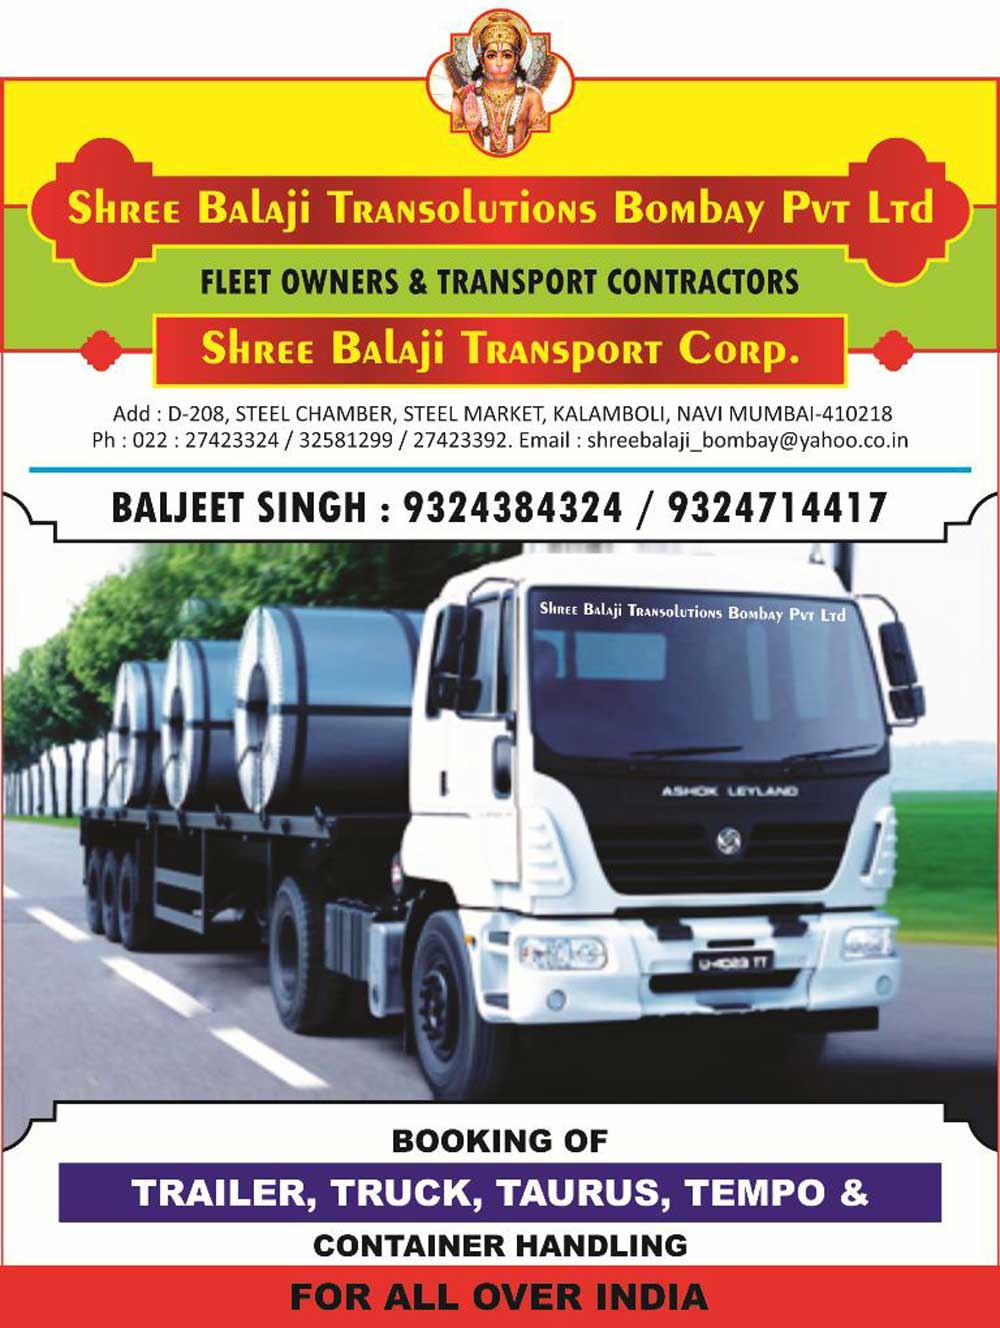 Shree Balaji Transolutions Bombay